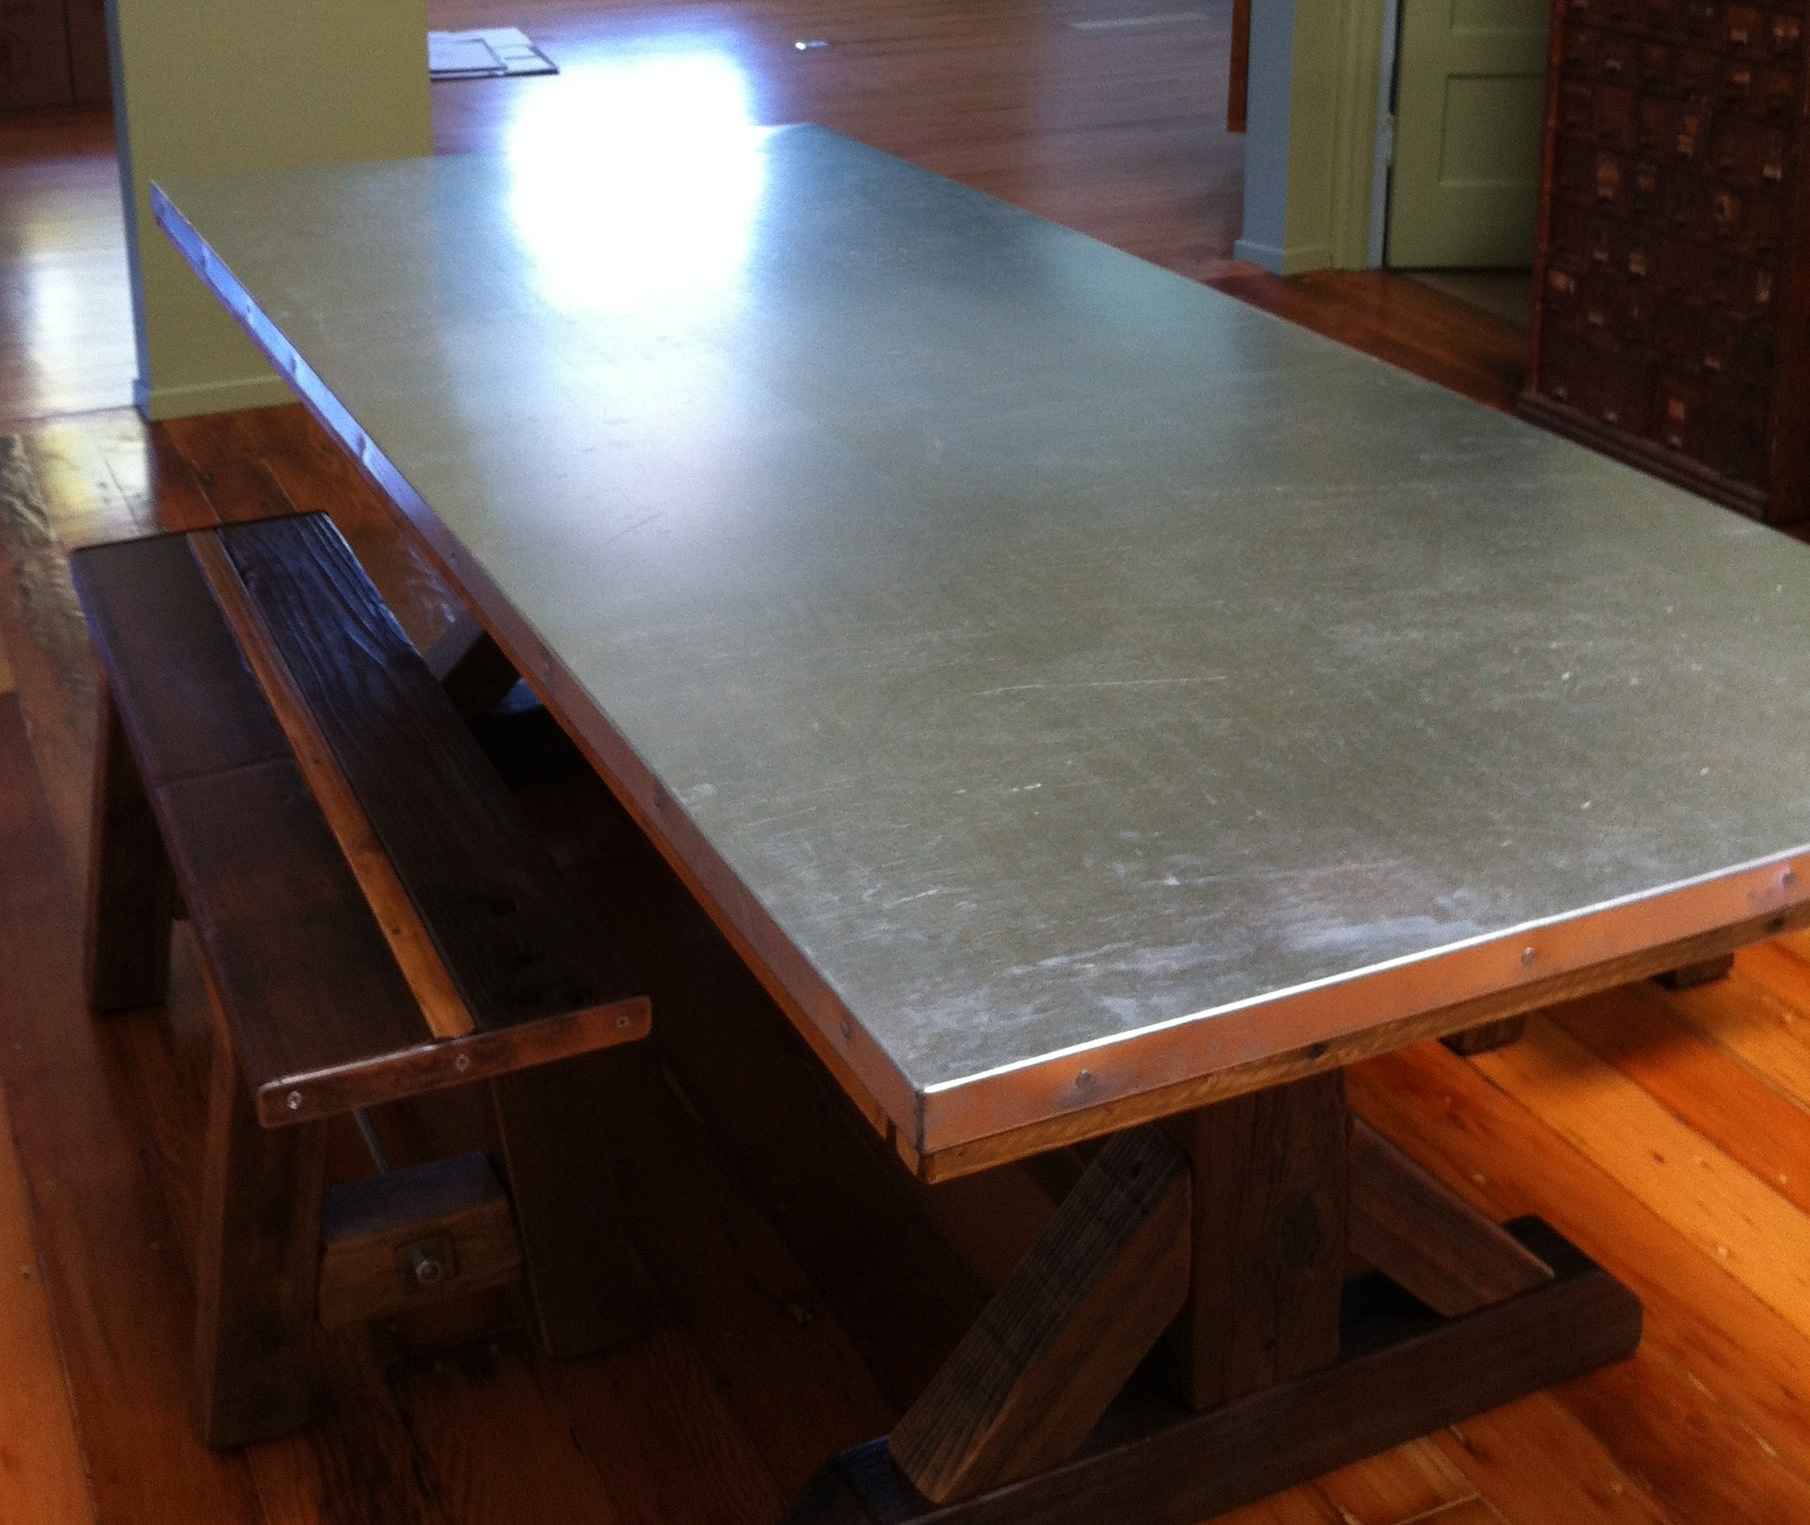 Work Table built by Terra Amico installed in the Create room of Oddyssea Half Moon Bay - Explore. Create. Discover.